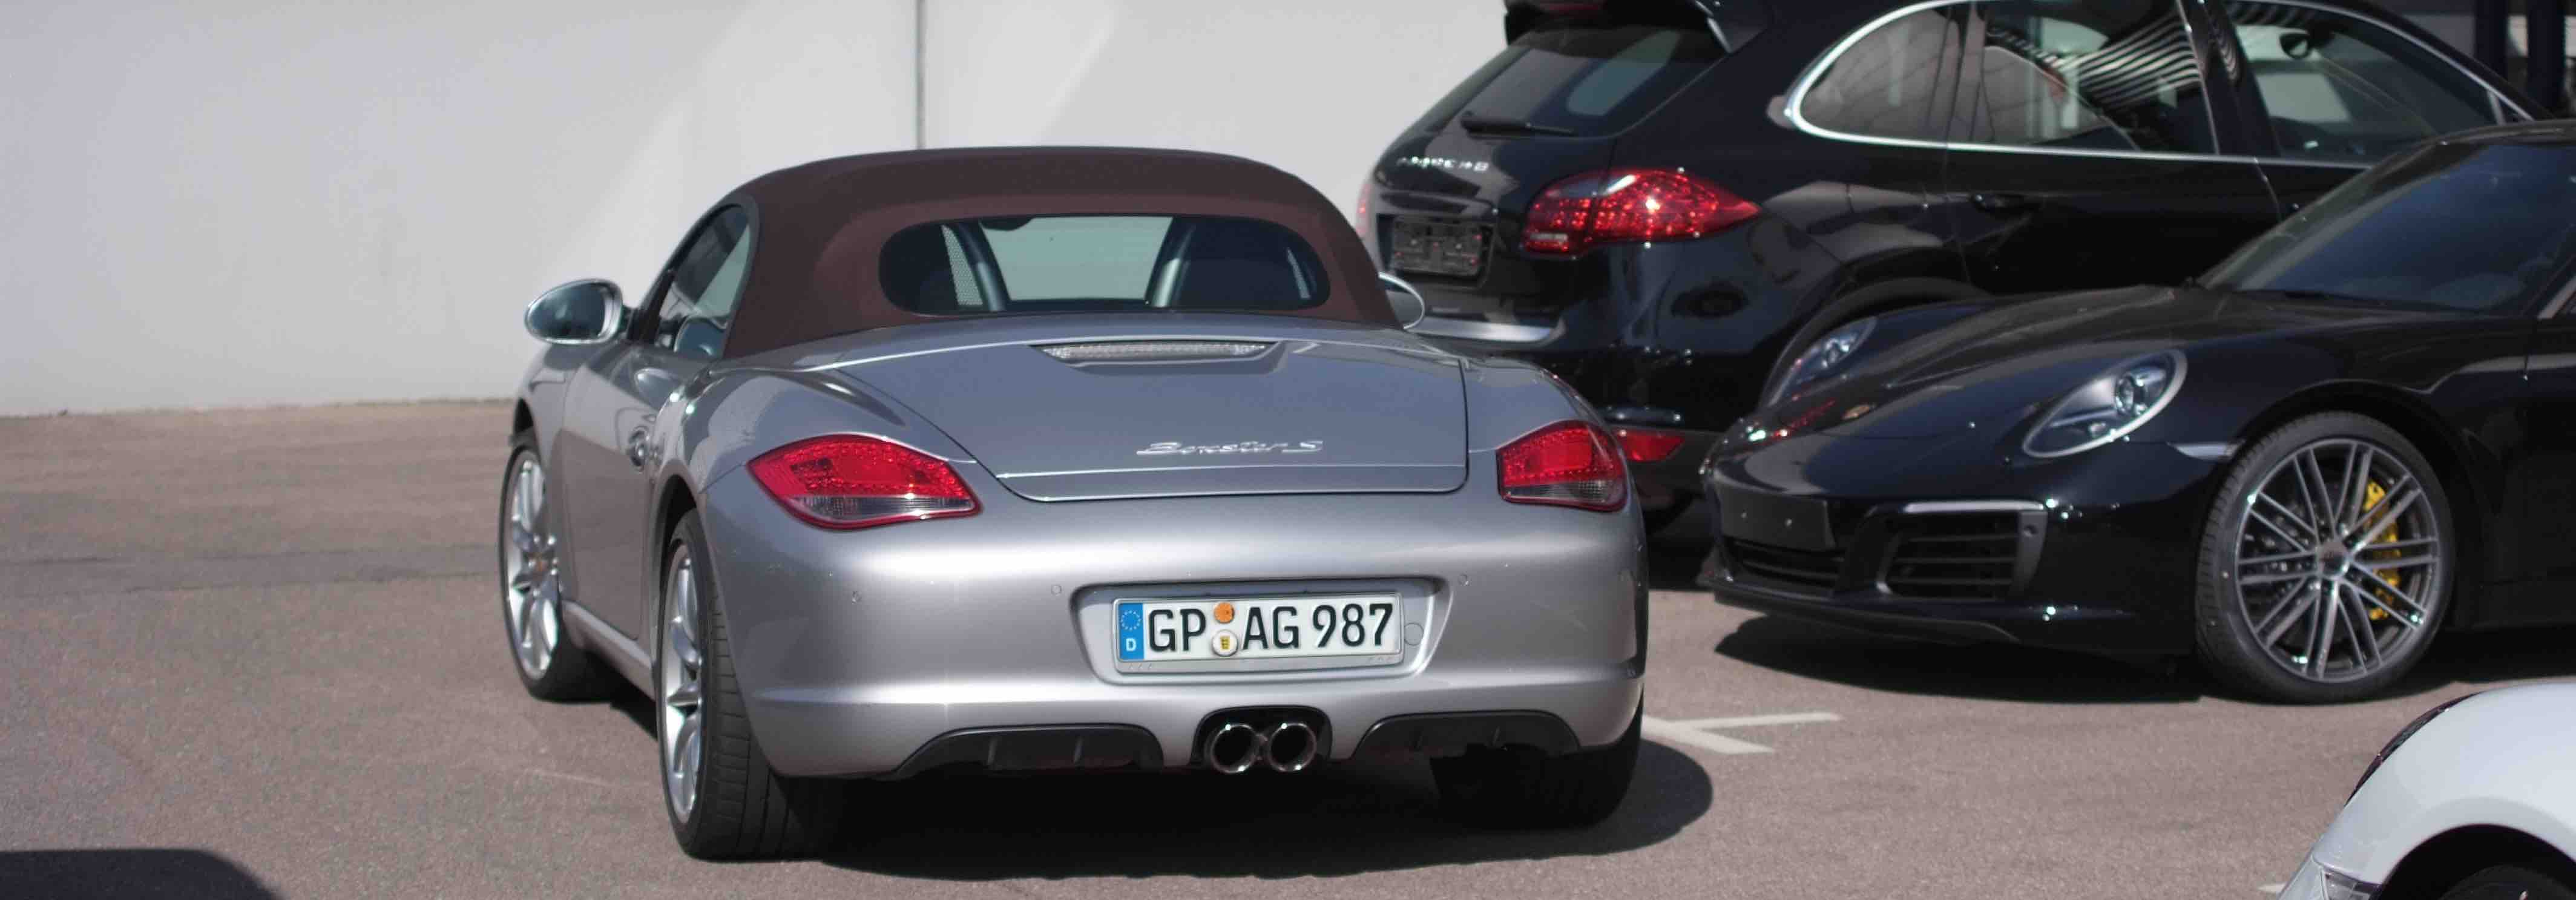 Annonces Porsche occasion modele Boxster type 987 phase 2